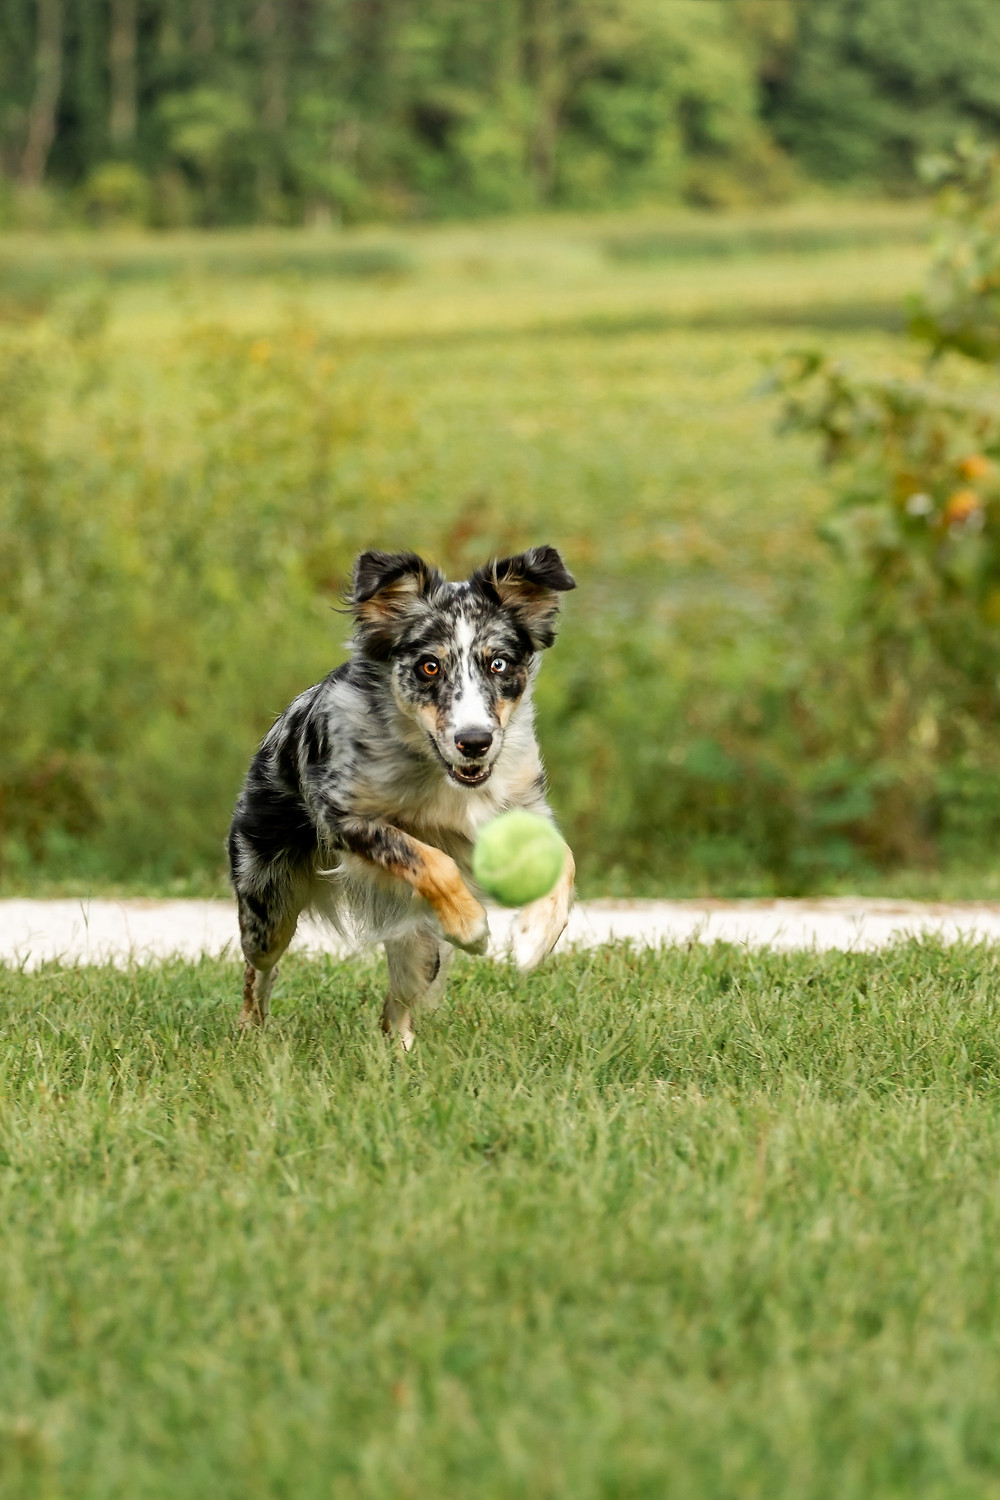 Australian Shepherd Chasing a Tennis Ball, Sippo Lake Park Dog Photography